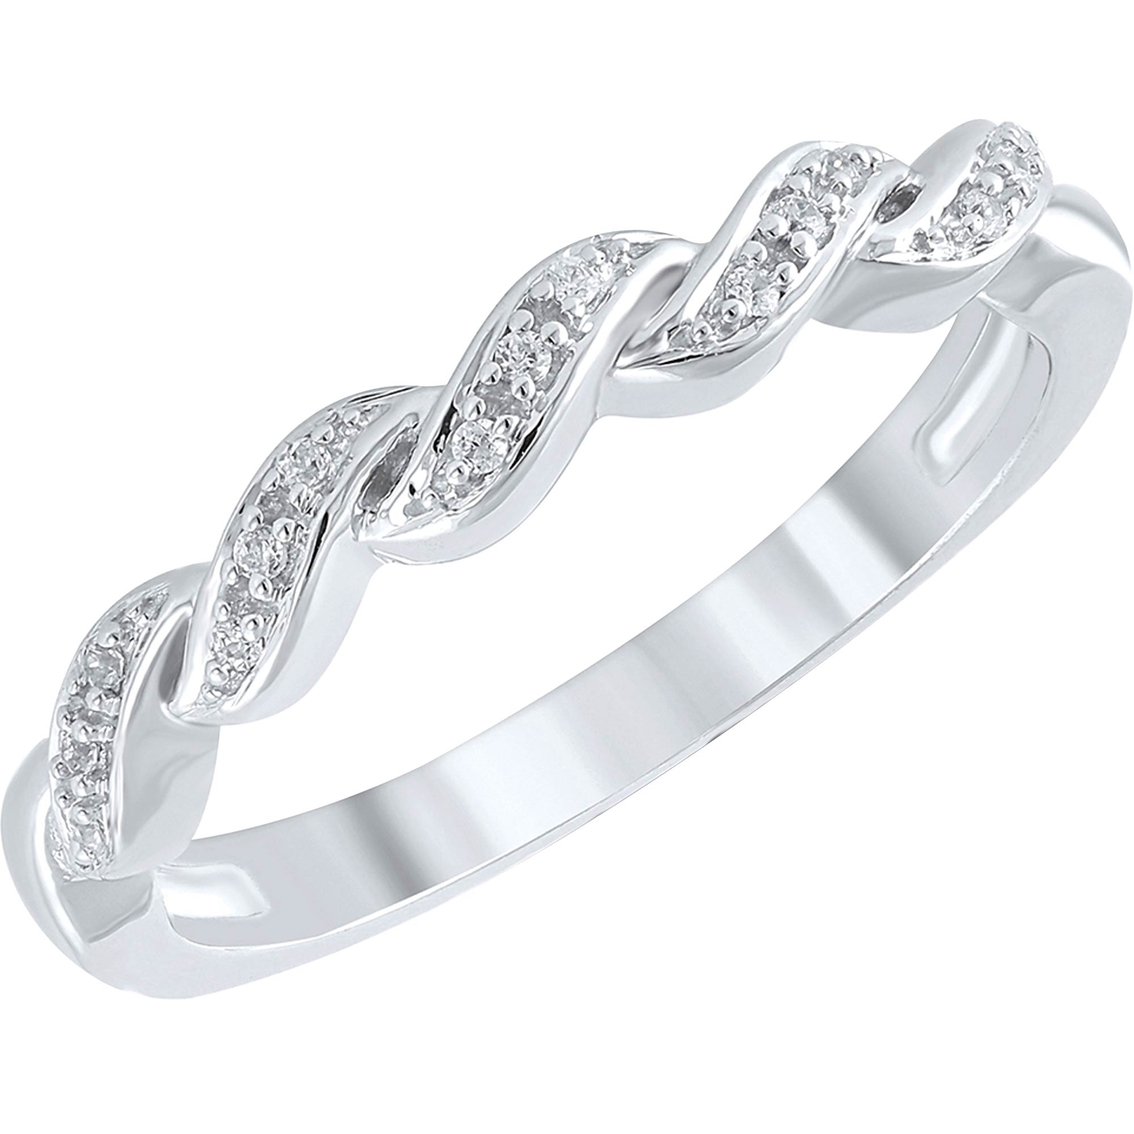 10k white gold accent braided ring size 7